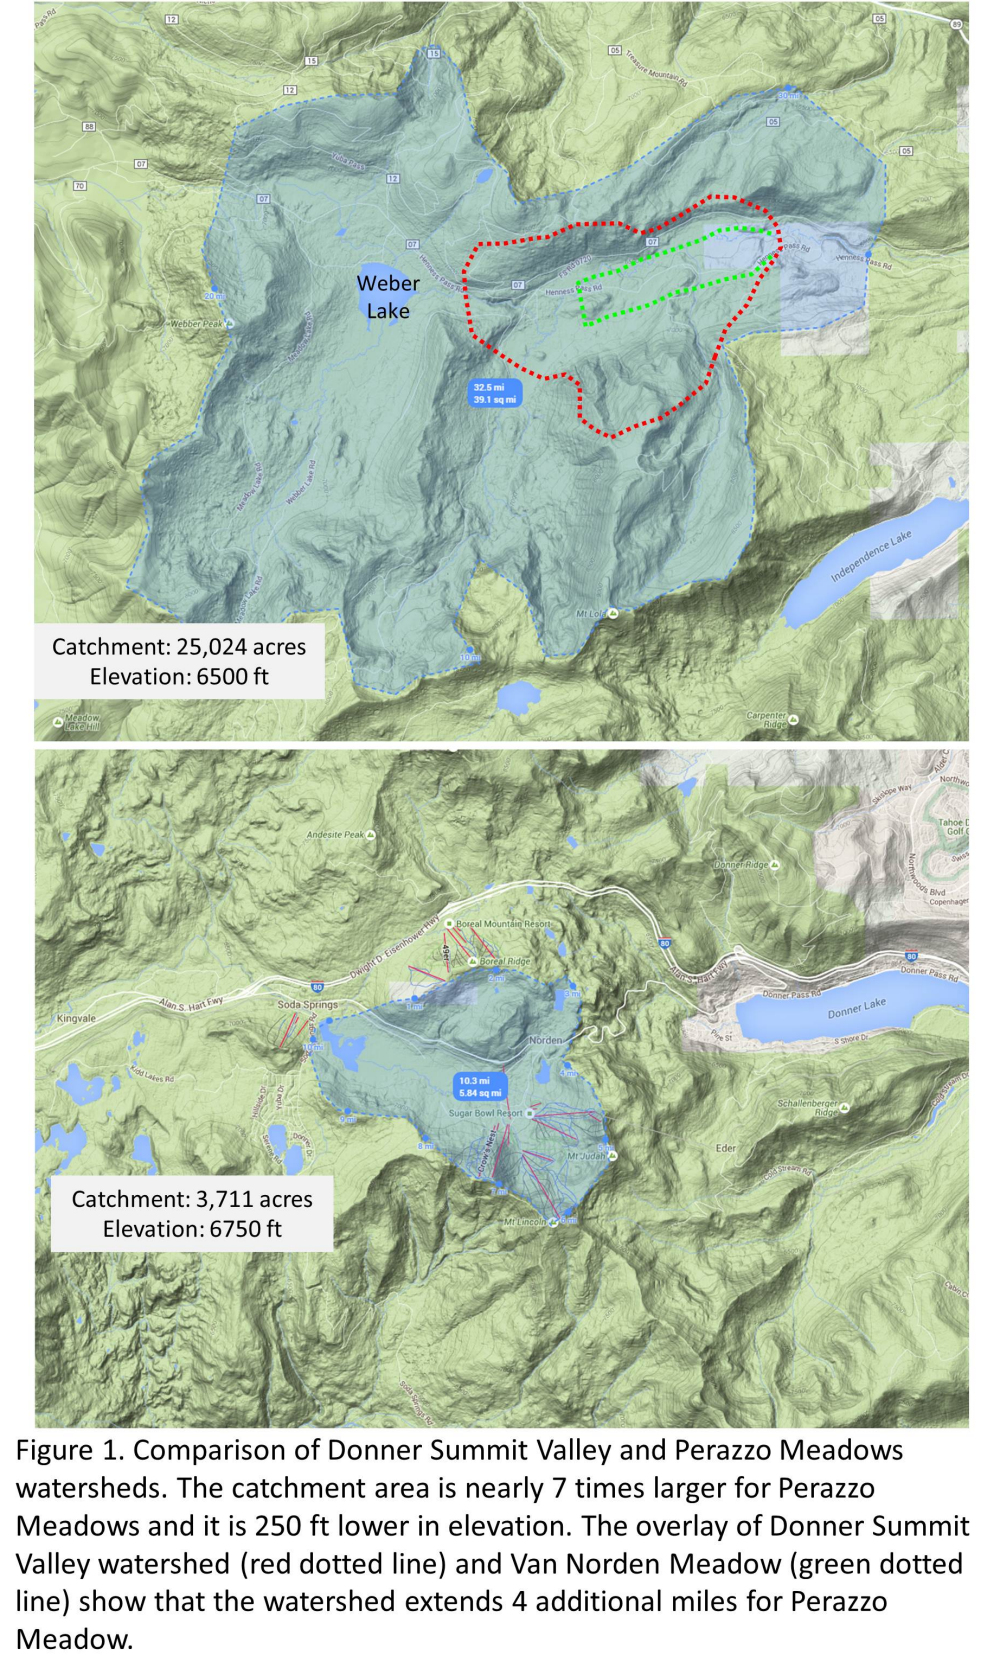 Comparison of Donner Summit Valley and Perazzo Meadows catchments